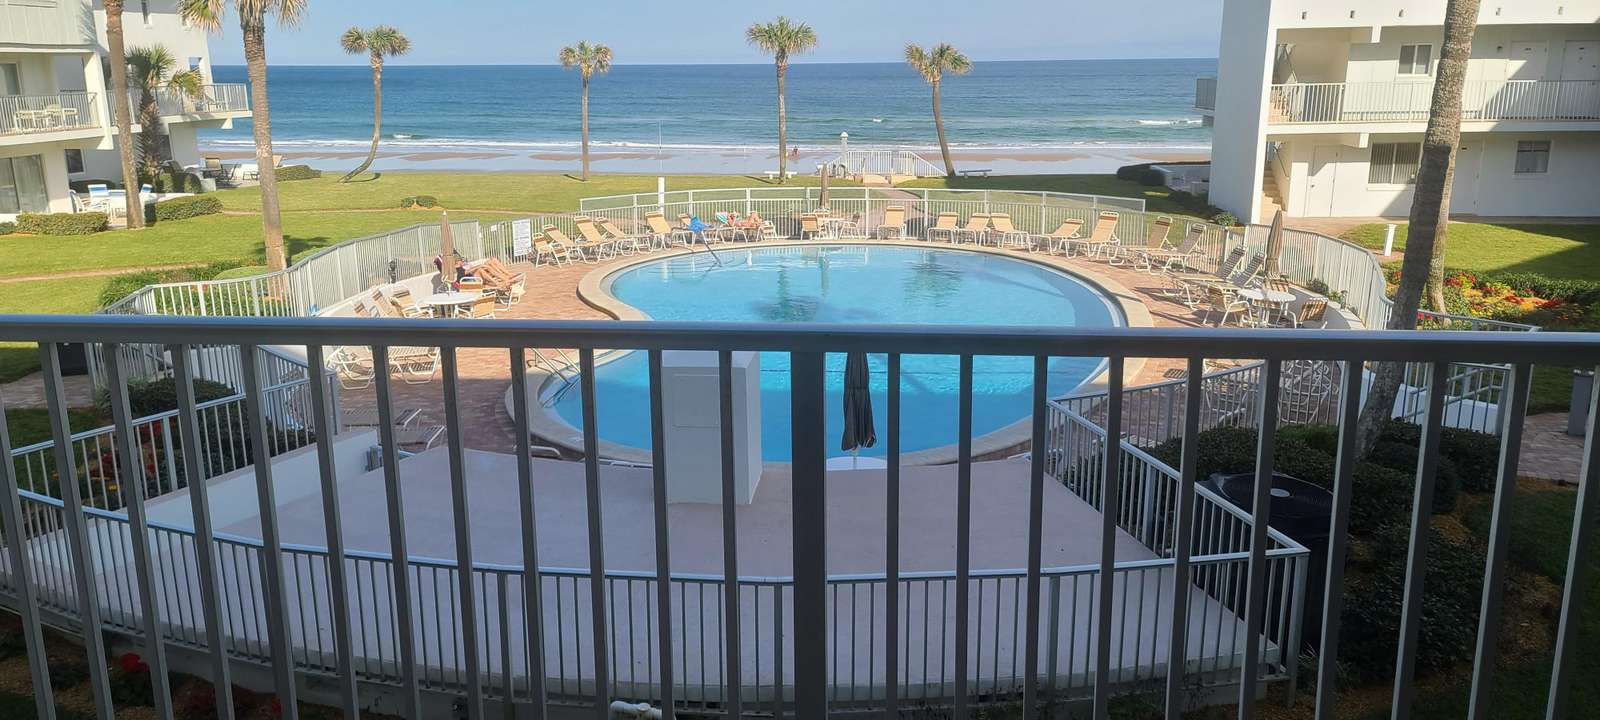 View from condo - just steps to the beach - property